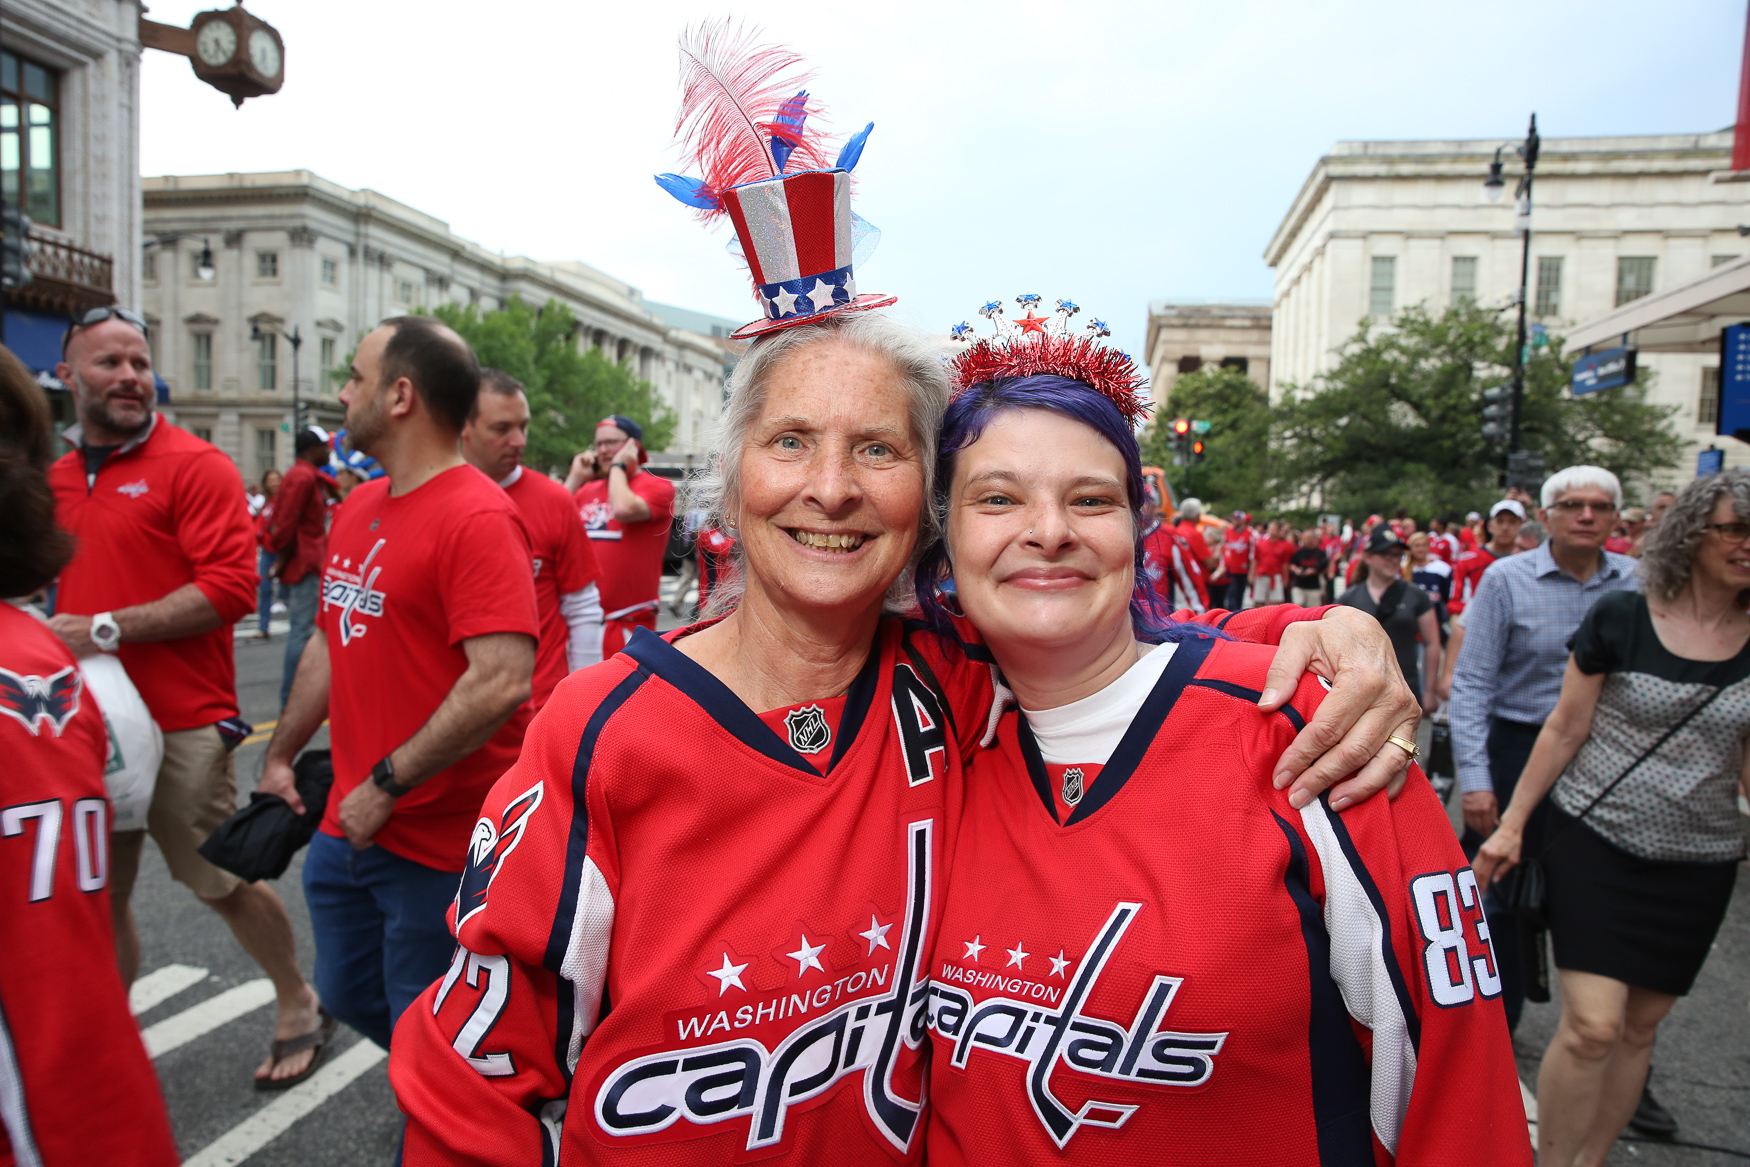 Thousands of Caps fans flooded downtown D.C. to watch the third game of the Stanley Cup series.{ } Although some lucky fans had tickets, others stayed outside to watch the game being live streamed on the screens outside. Those who arrived early were treated to a free concert by Sting and Shaggy outside of the National Portrait Gallery, but every fan had the chance to cheer, boo and bond over their love for the Caps. (Amanda Andrade-Rhoades/DC Refined)